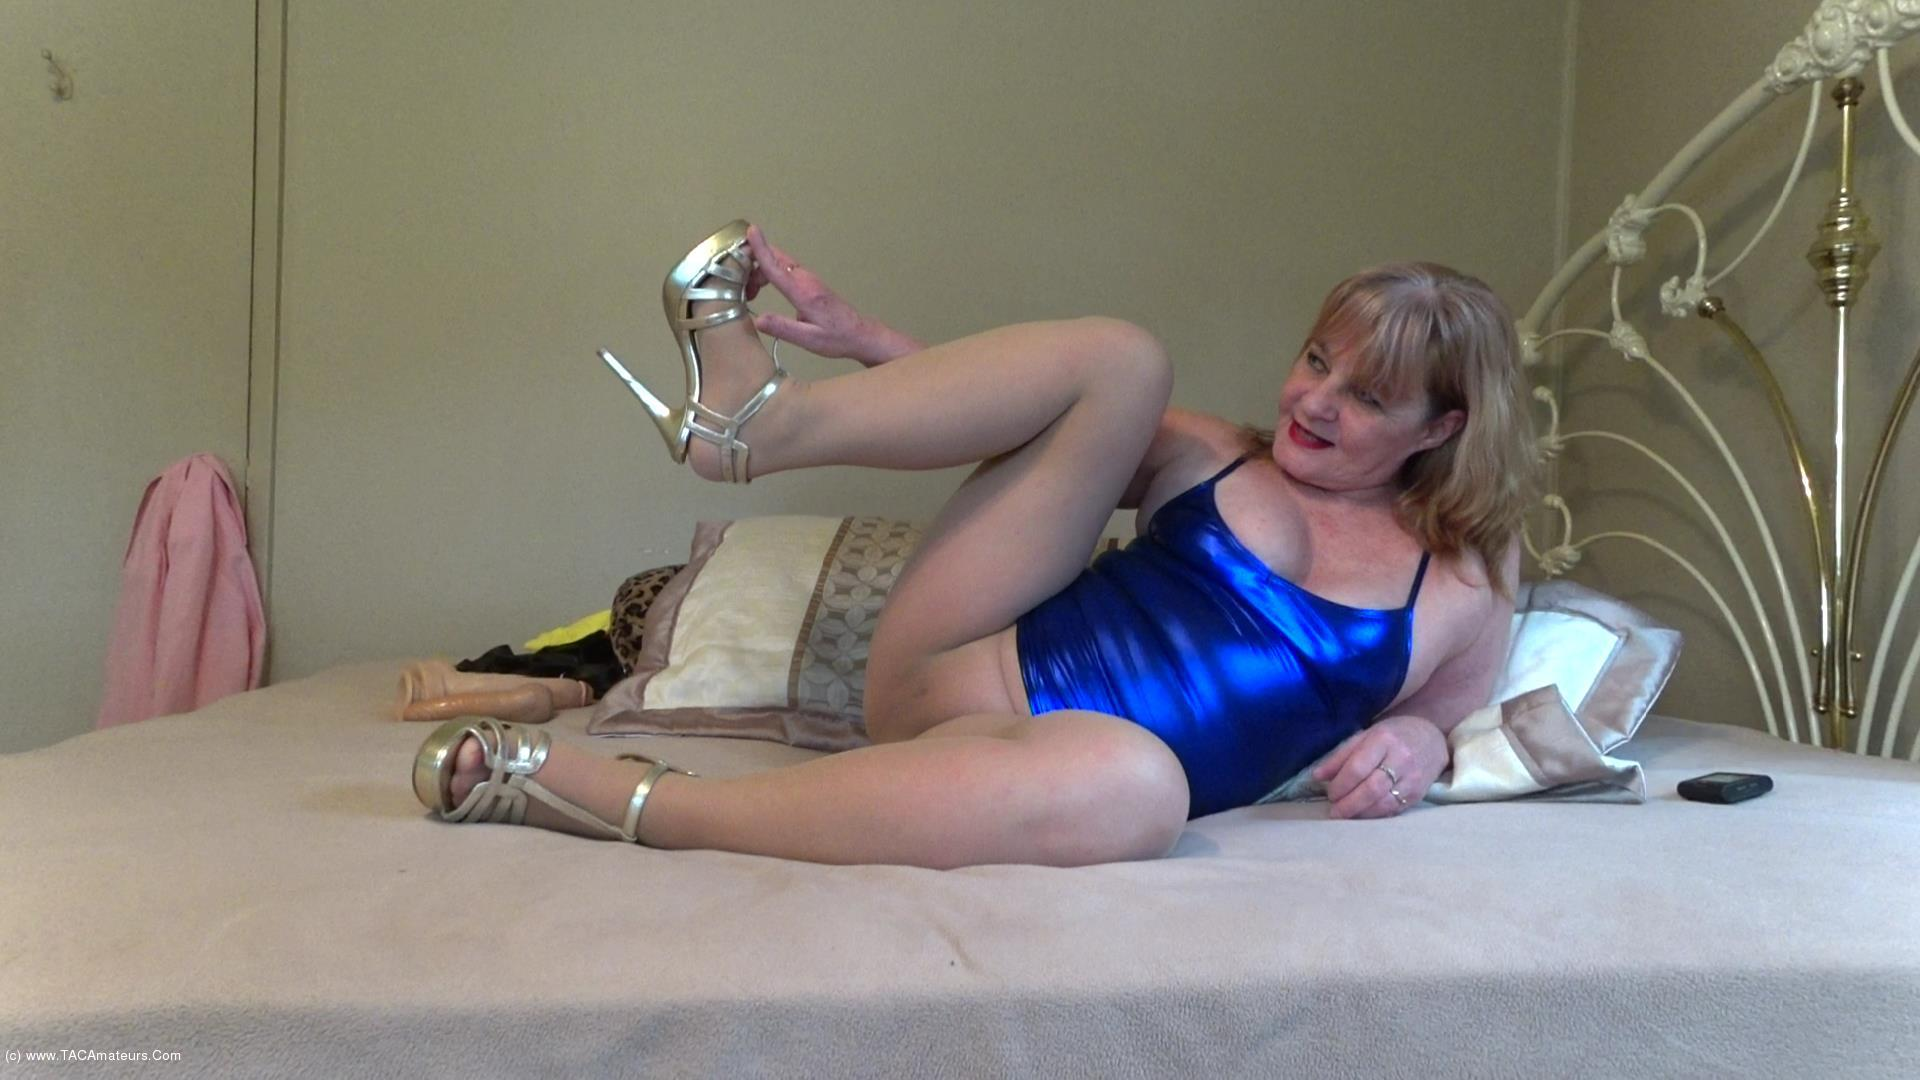 CougarBabeJolee - Sultry In PVC & Pantyhose Pt2 scene 0